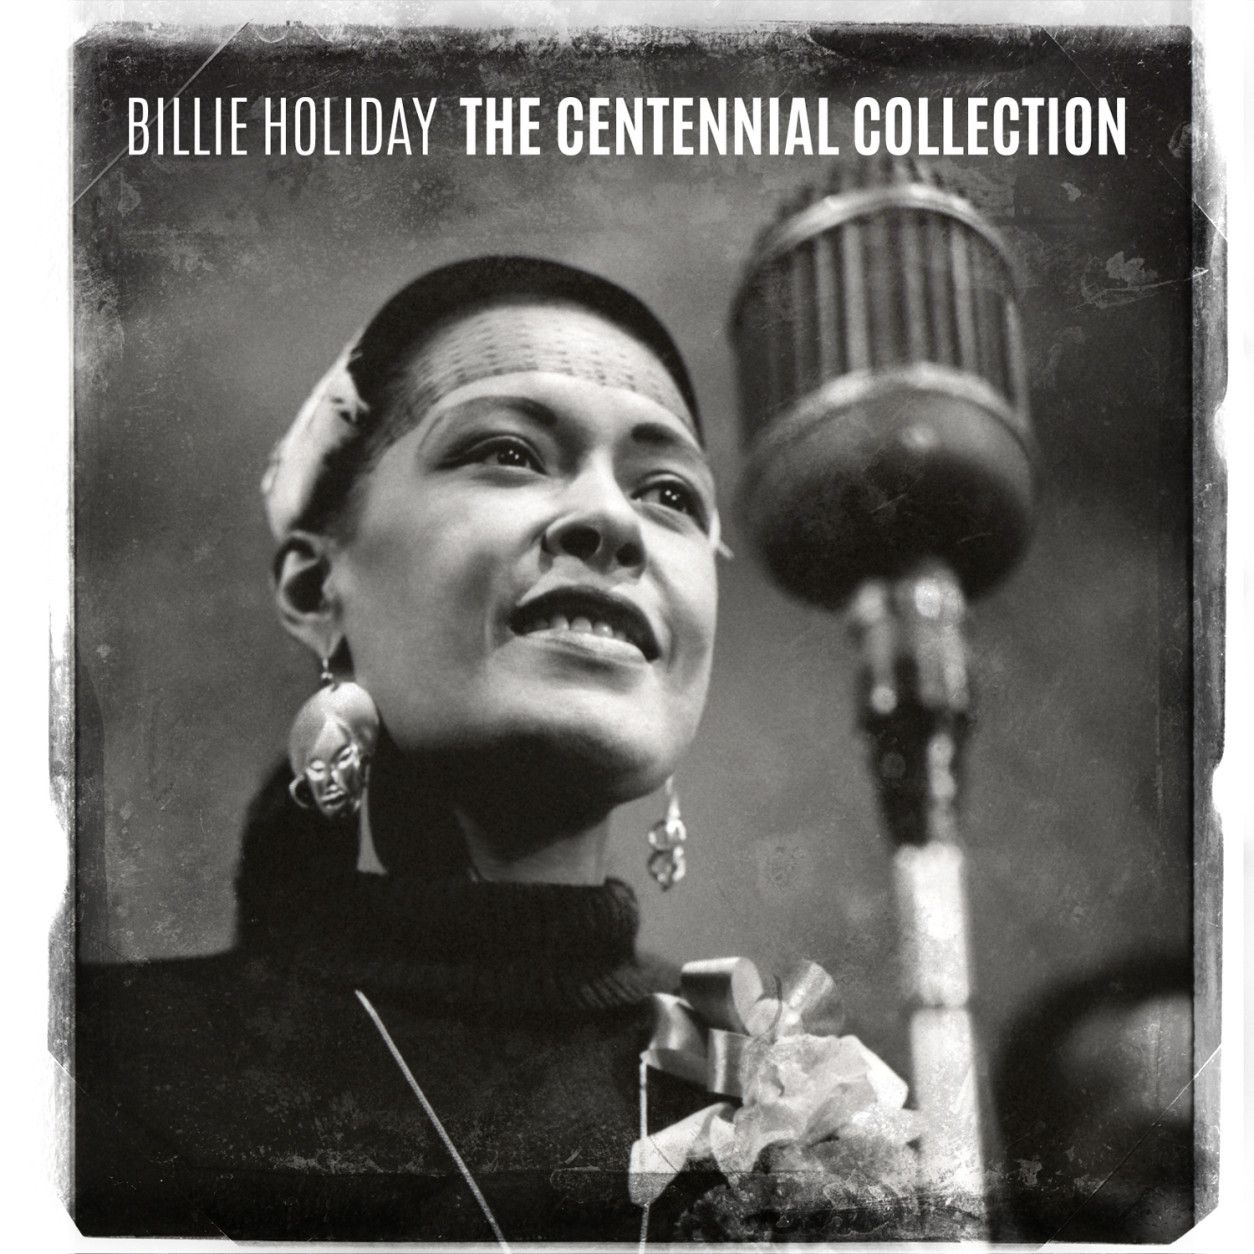 Music-Review-Billie-Holiday-1254x1254.jpeg (1254×1254)